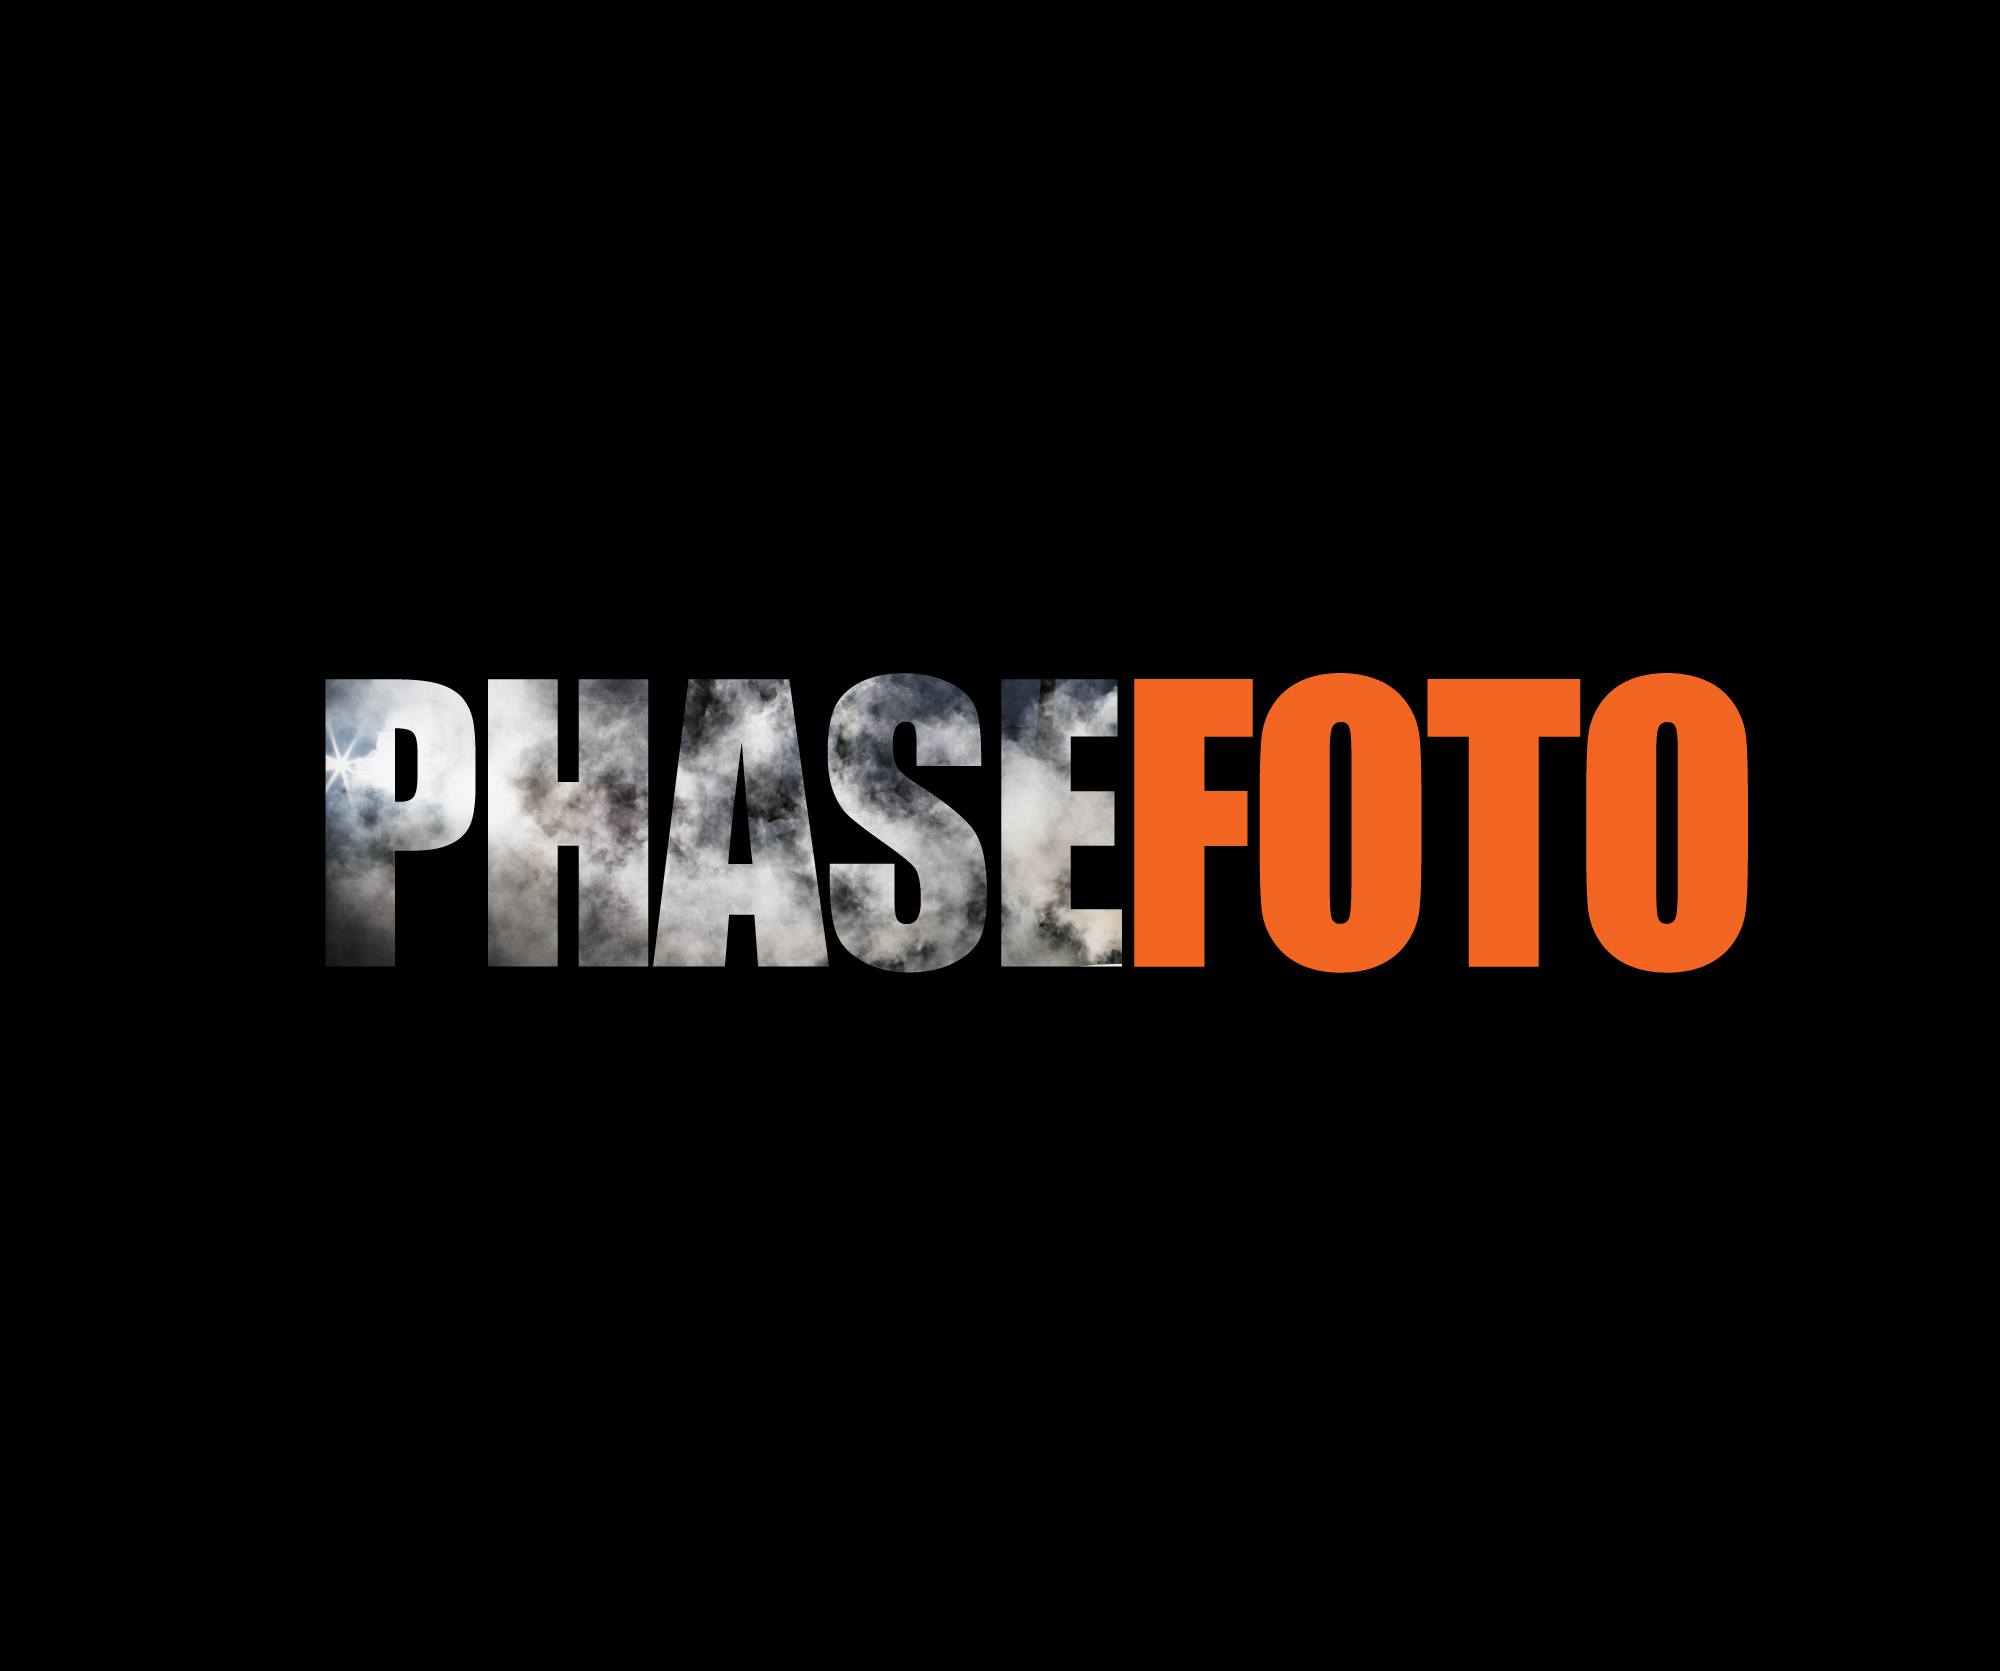 phasefoto-new-logo.jpg